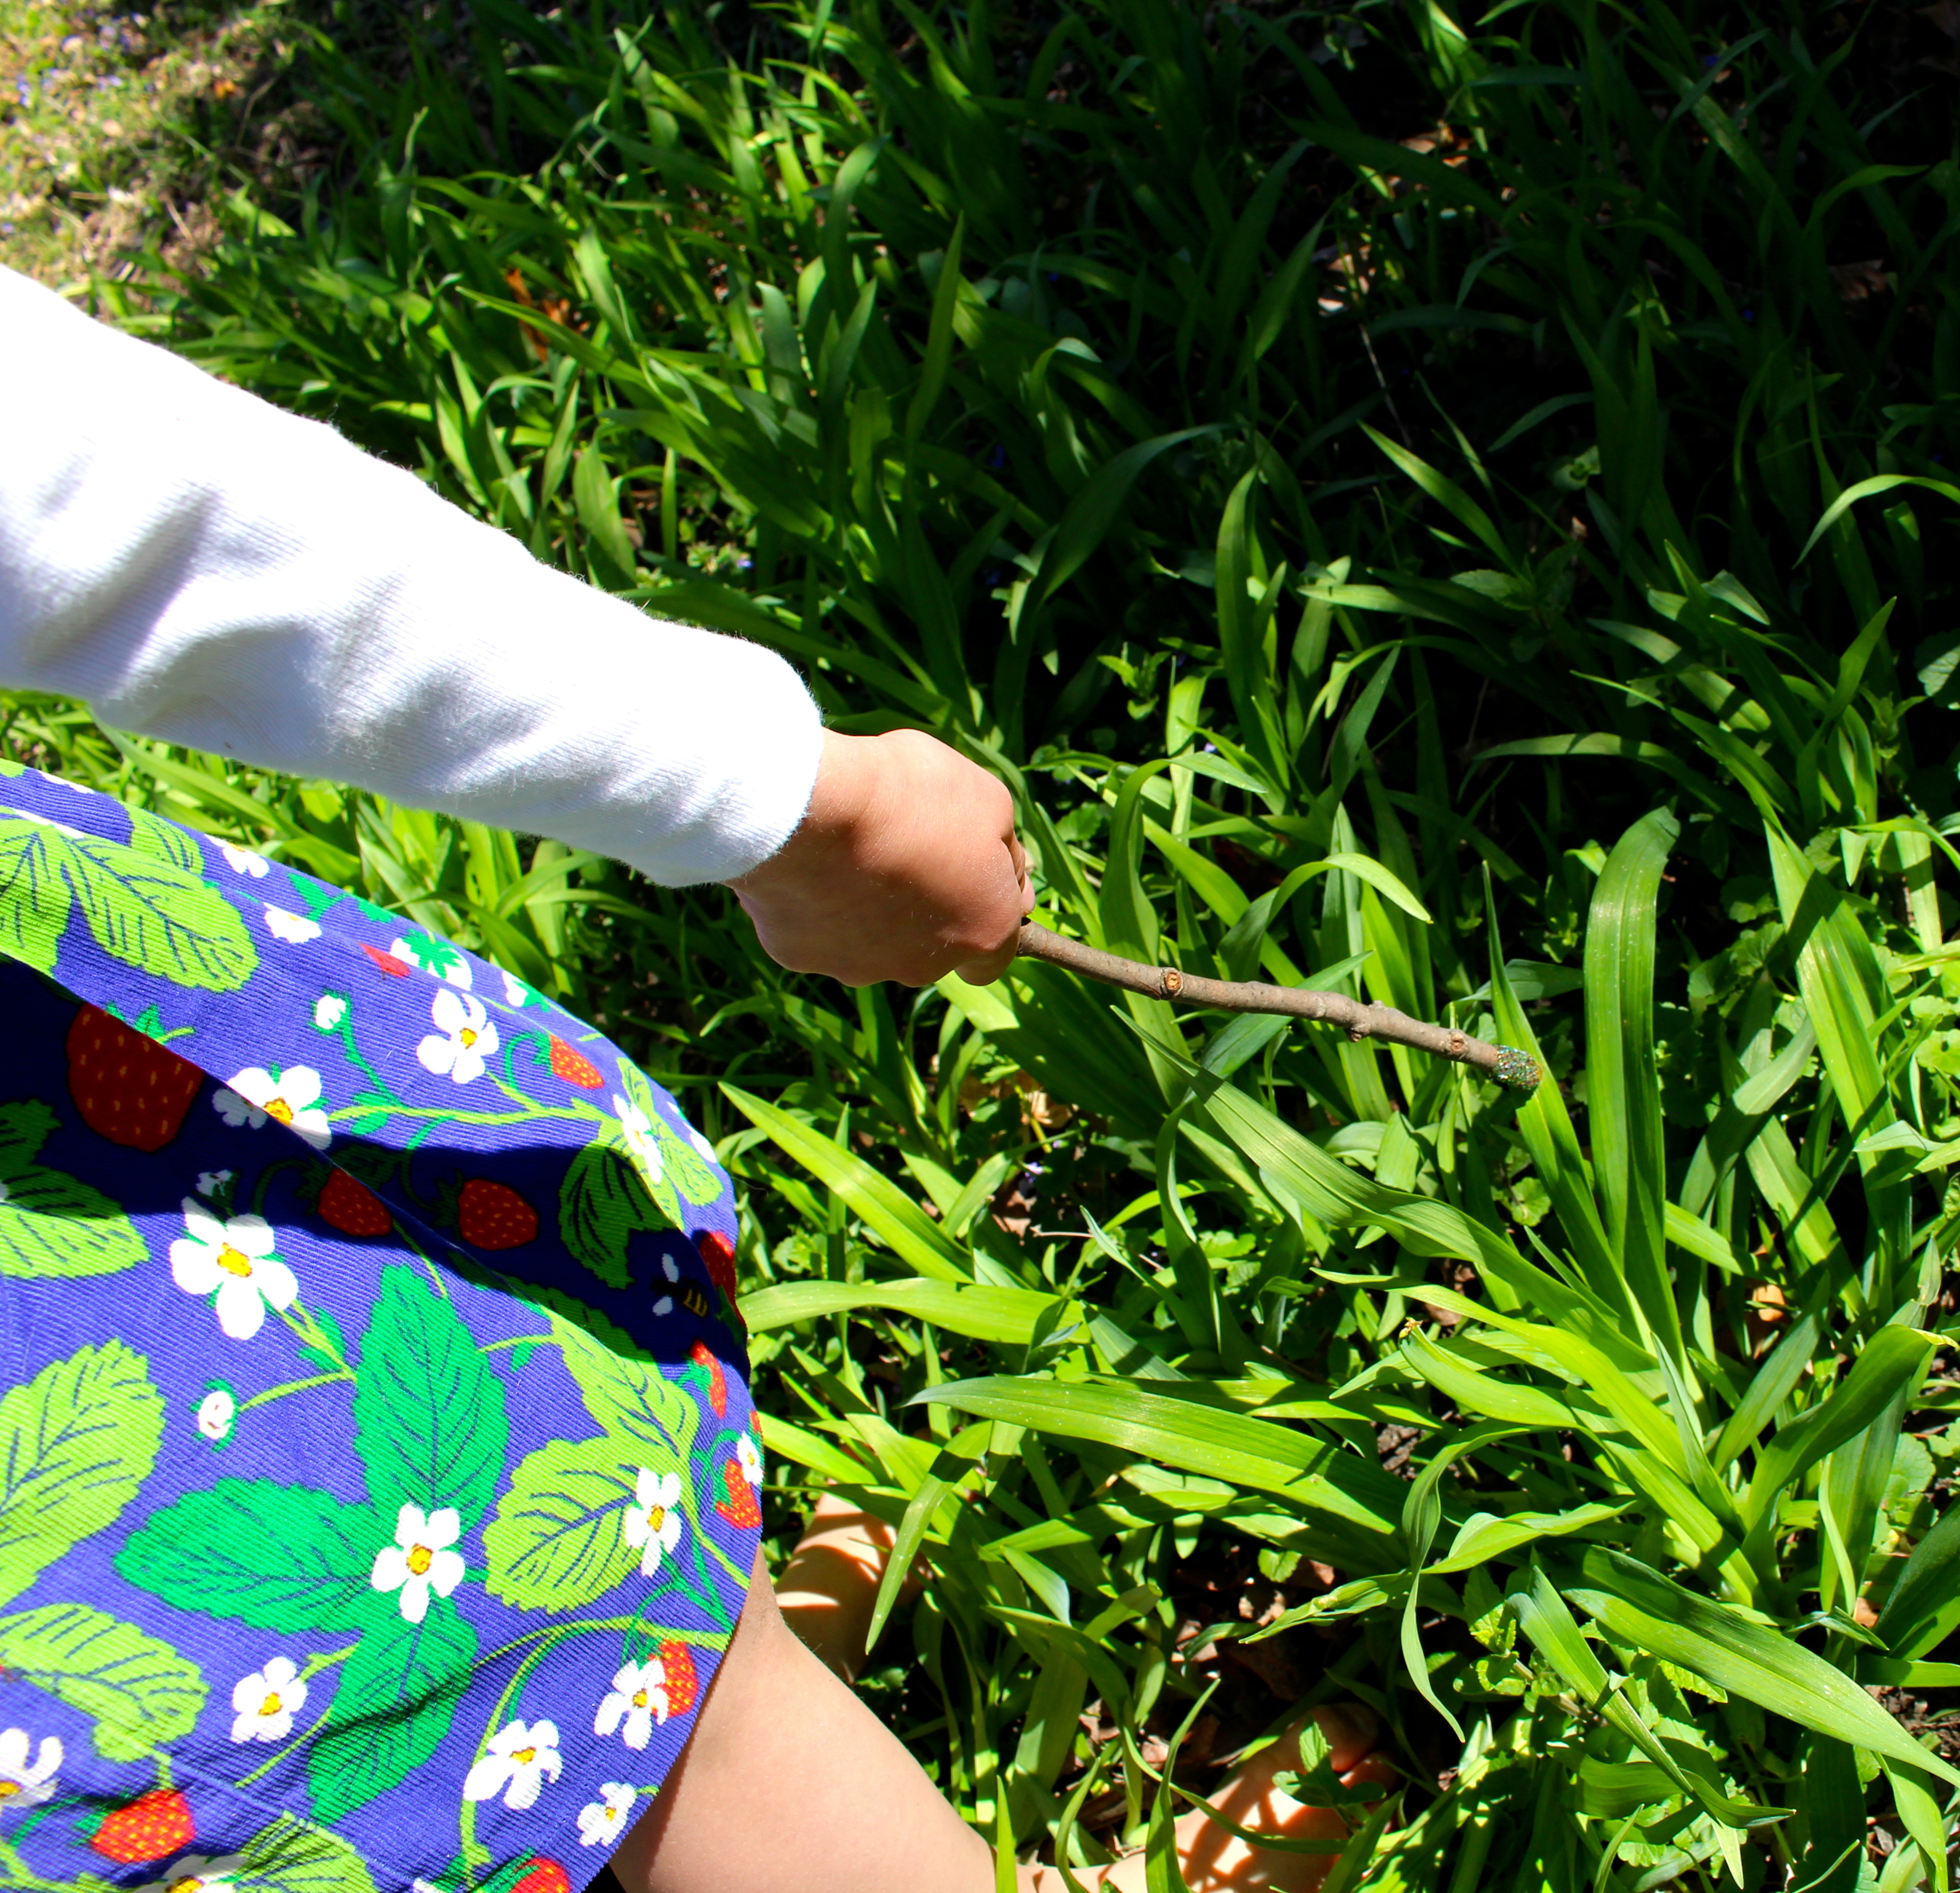 Abracadabra, It's Spring + Magic Wand Craft : Sturdy for Common Things